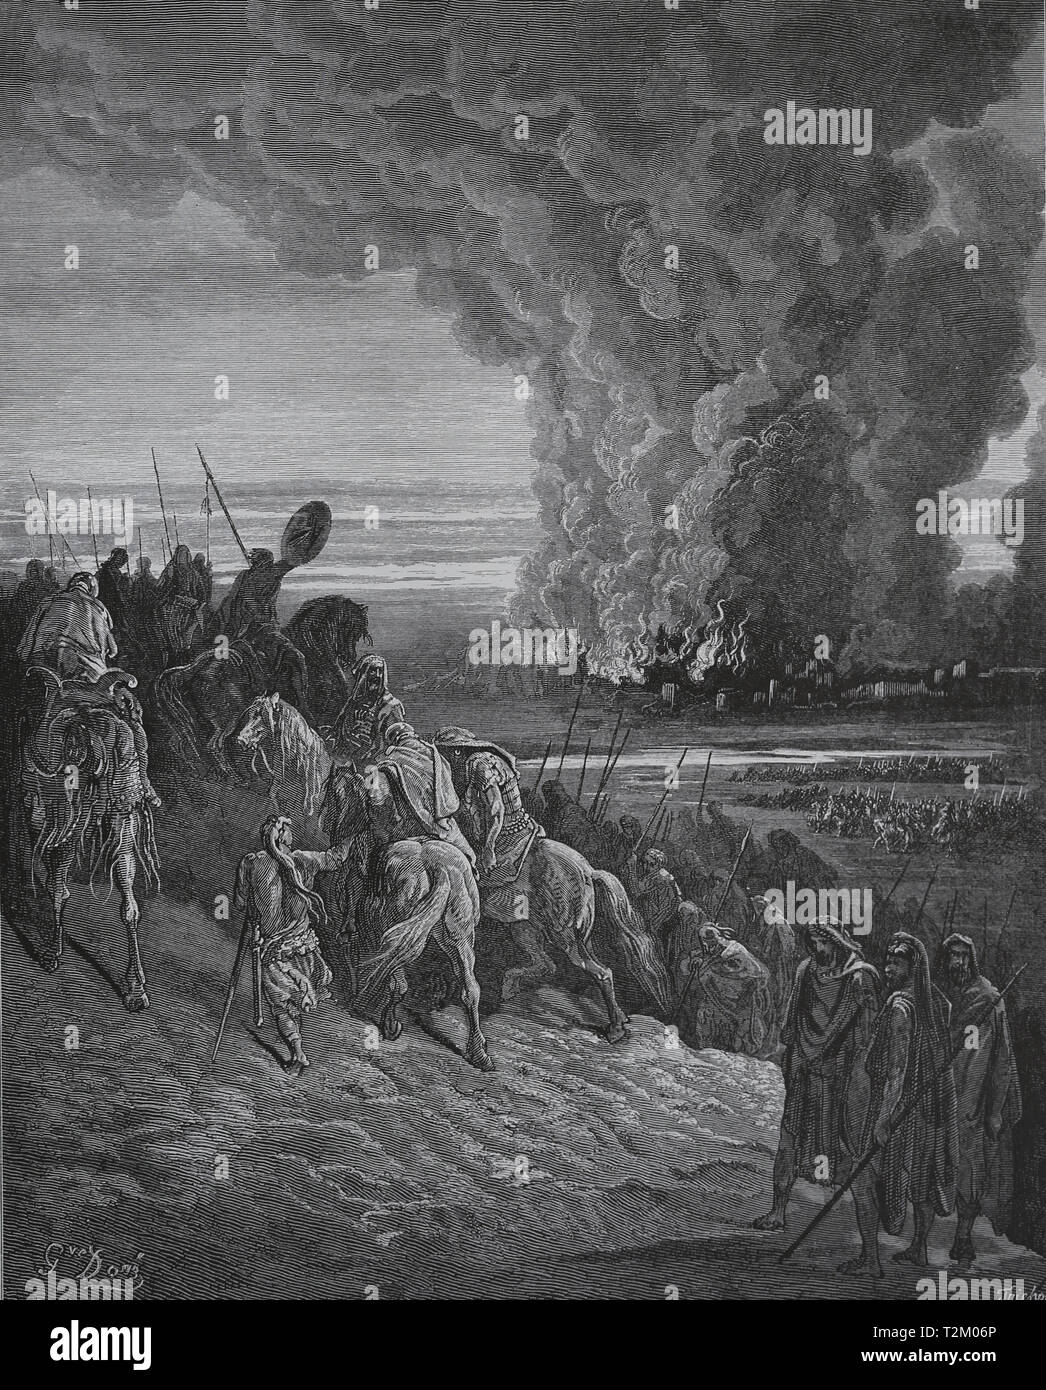 Bible. Book of Joshua. Joshua burns the Town of Ai. Conquest of Canaan. Engraving by Gustave Dore, 1866 - Stock Image